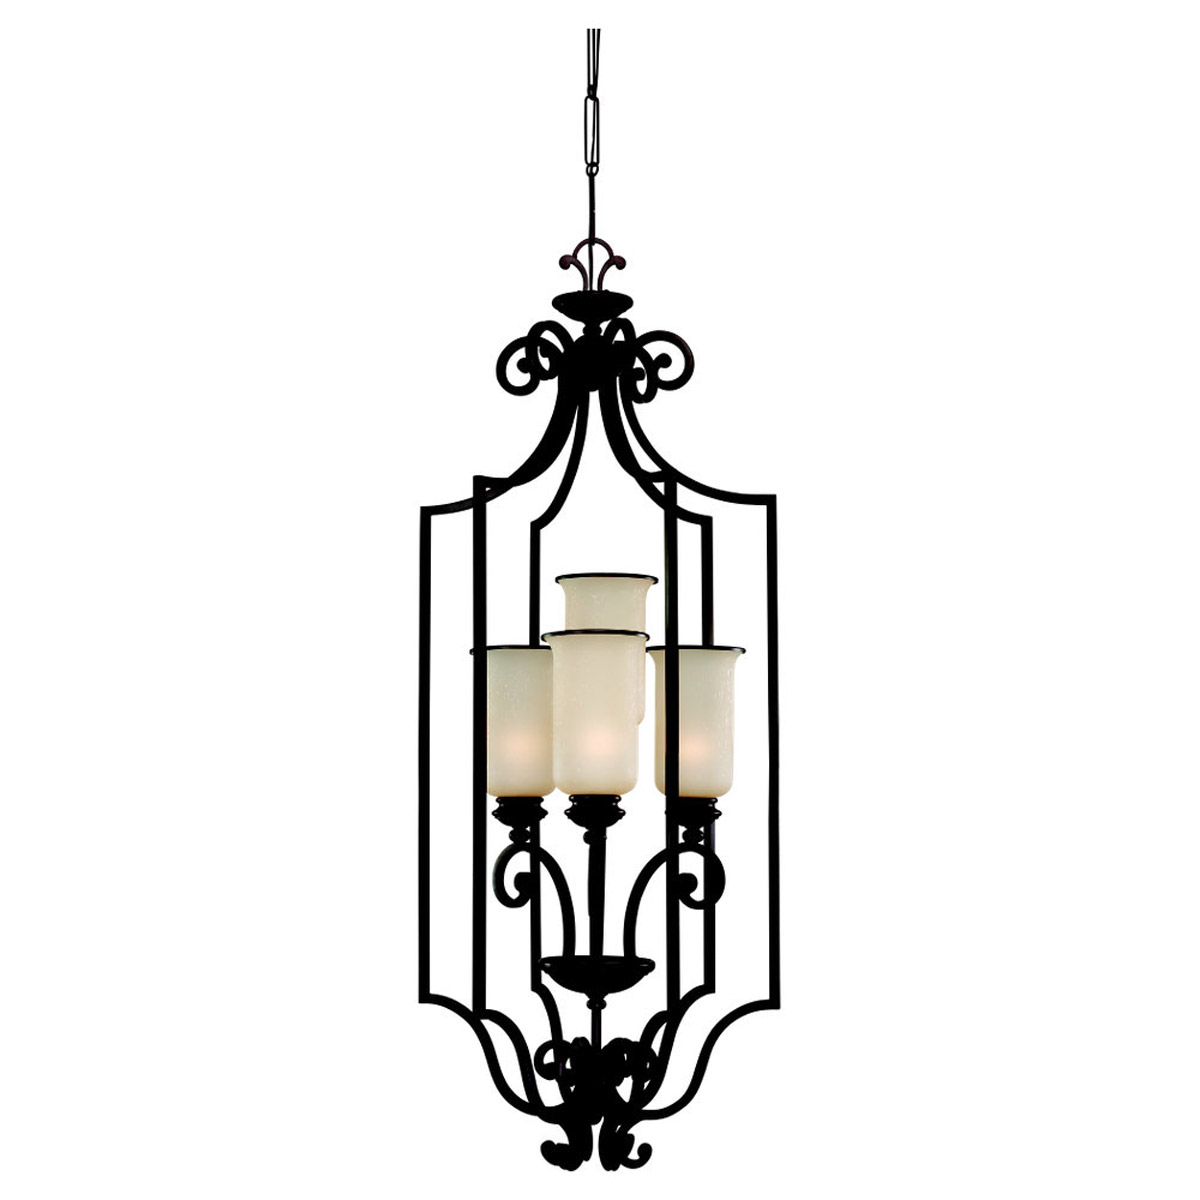 Sea Gull 51146-814 Acadia 4 Light 18 inch Misted Bronze Foyer Pendant Ceiling Light in Standard photo